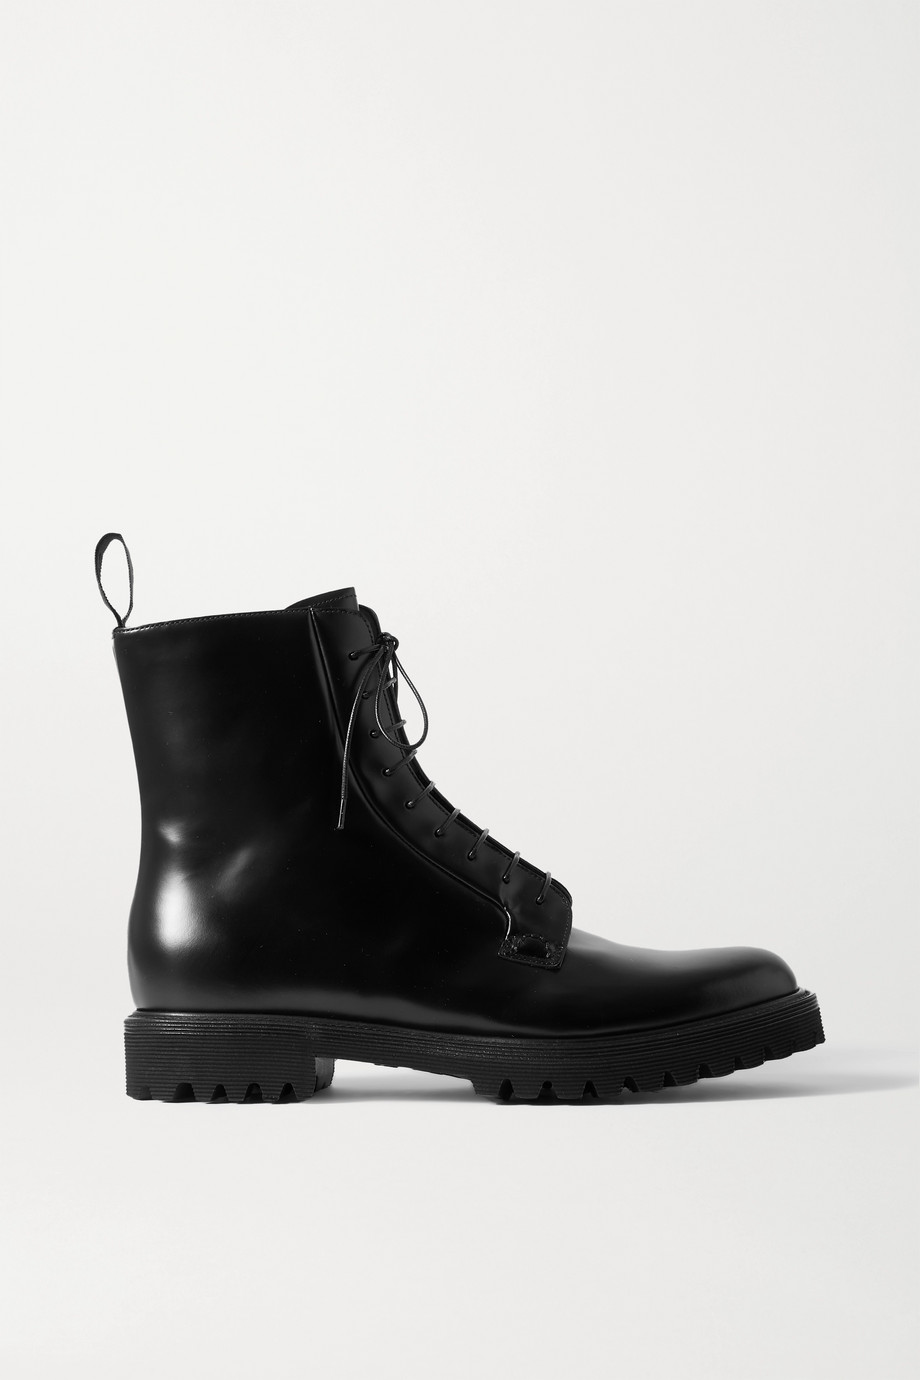 CHURCH'S Alexandra leather ankle boots